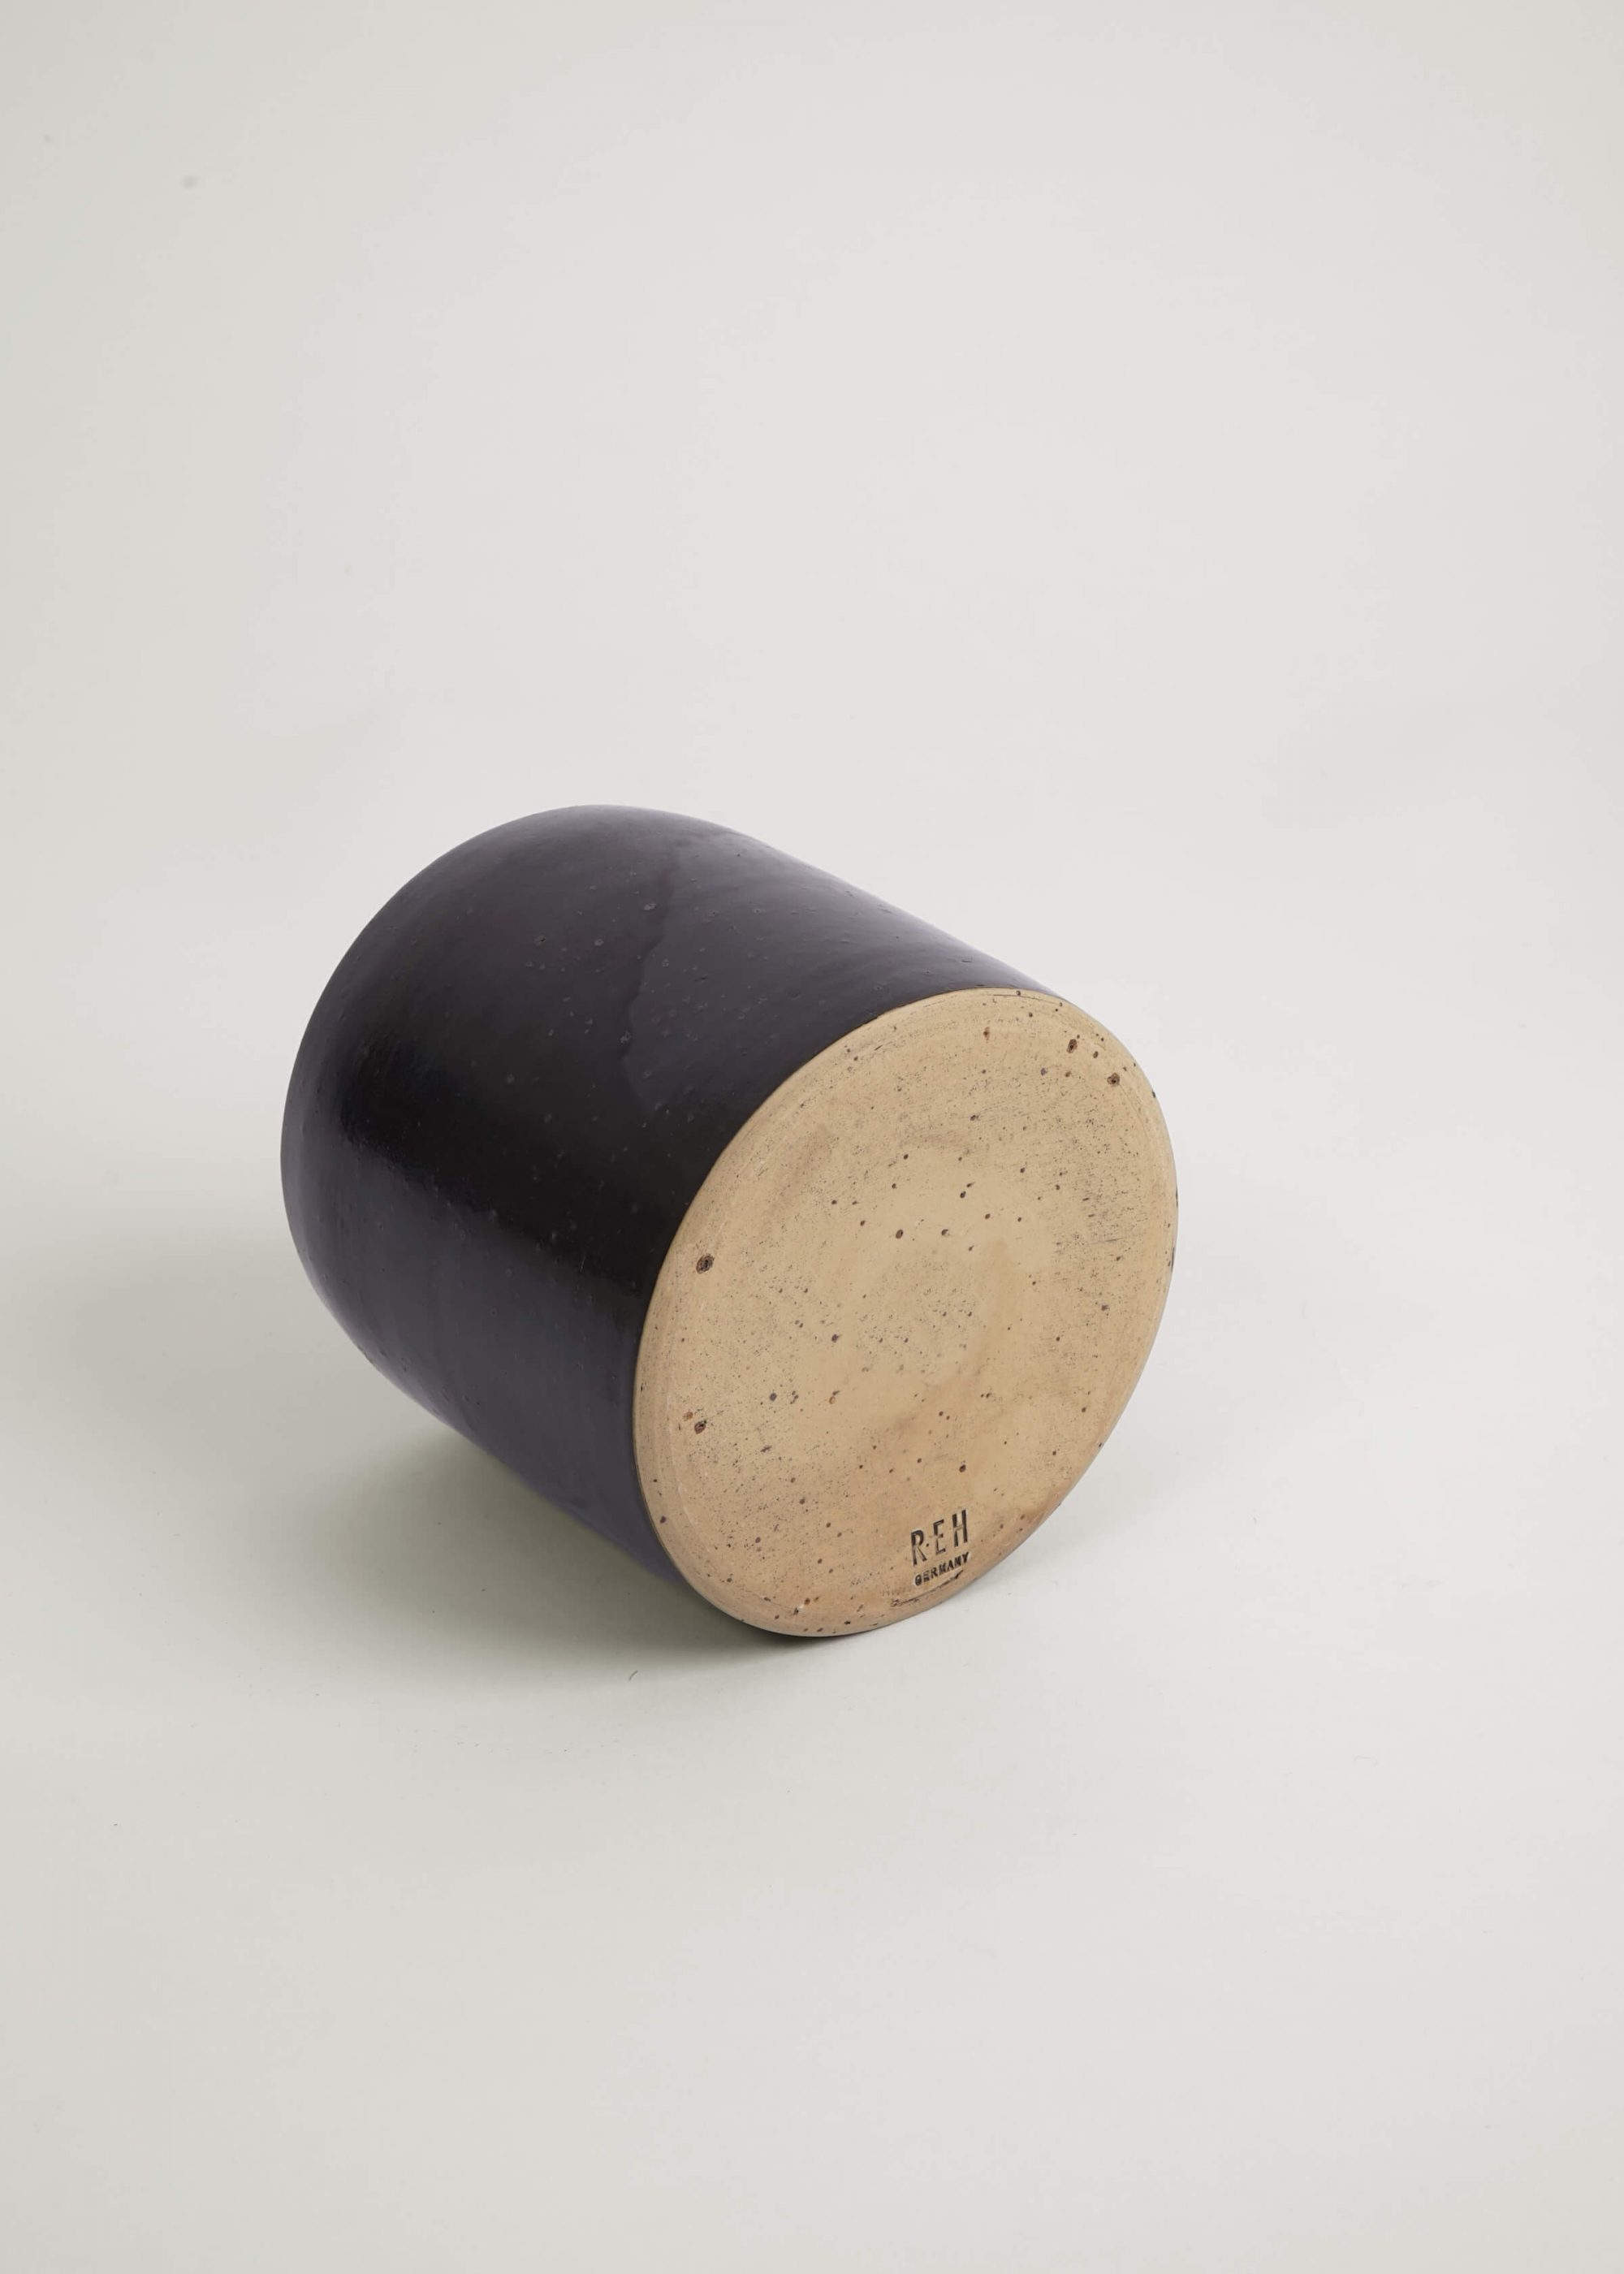 Product image for N° ICD4 Burri Plant Pot S